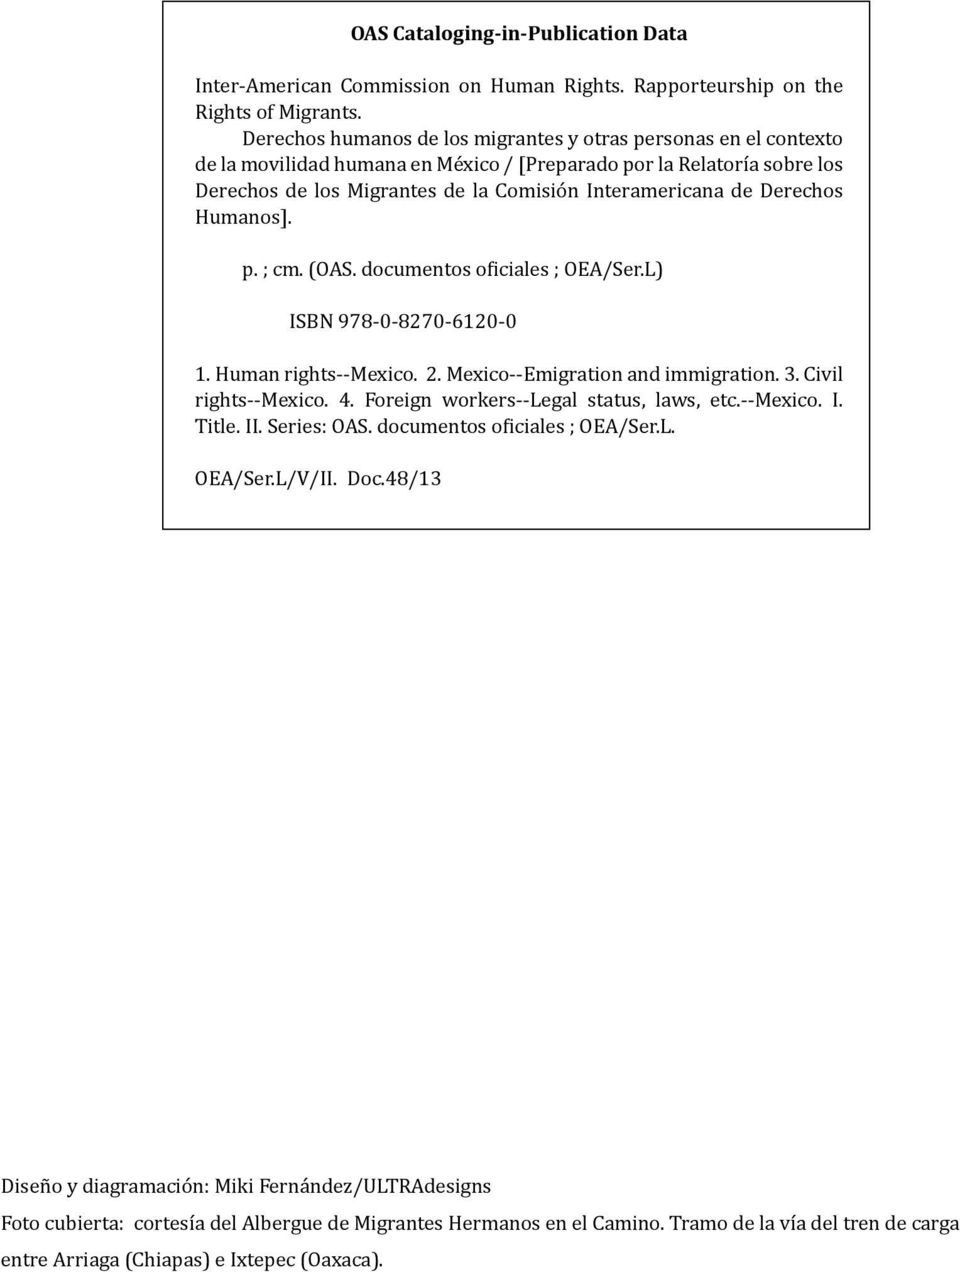 Derechos Humanos]. p. ; cm. (OAS. documentos oficiales ; OEA/Ser.L) ISBN 978-0-8270-6120-0 1. Human rights--mexico. 2. Mexico--Emigration and immigration. 3. Civil rights--mexico. 4.